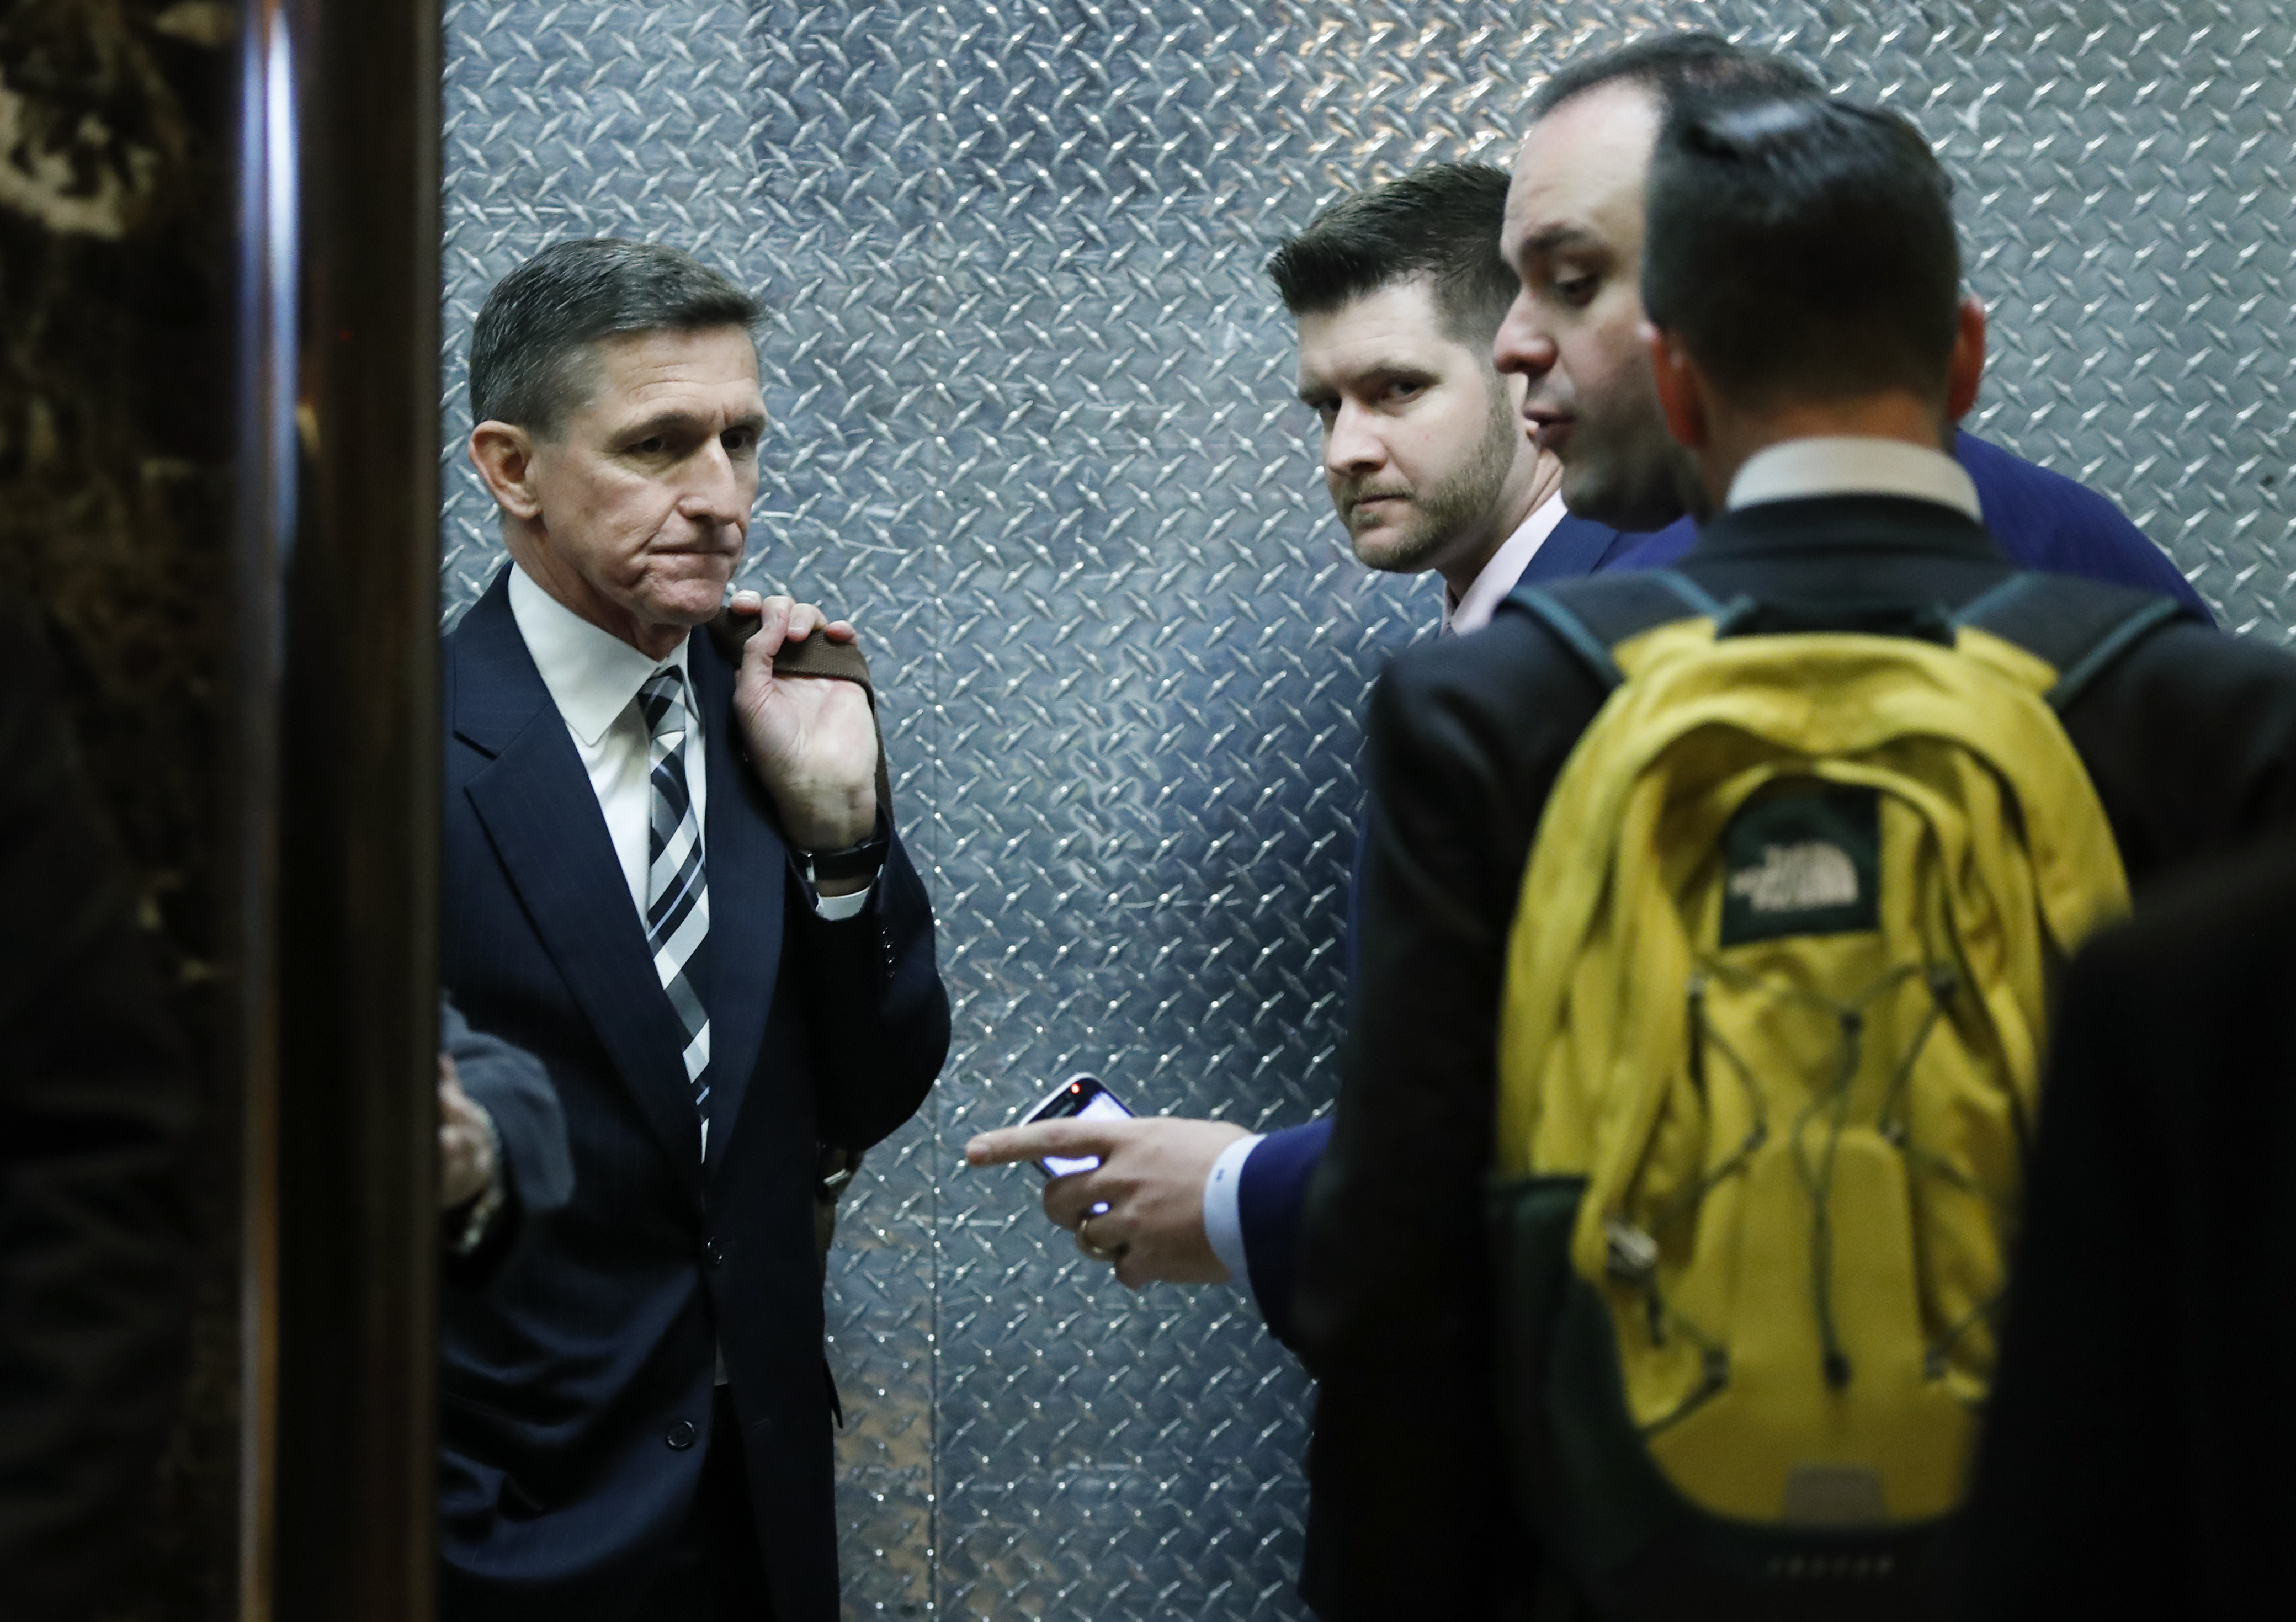 FILE -  retired Lt. Gen Michael Flynn, left, his son Michael G. Flynn, second from left, and Boris Epshteyn, a spokesman for President-elect Donald Trump, third from left, board an elevator at Trump Tower in New York.